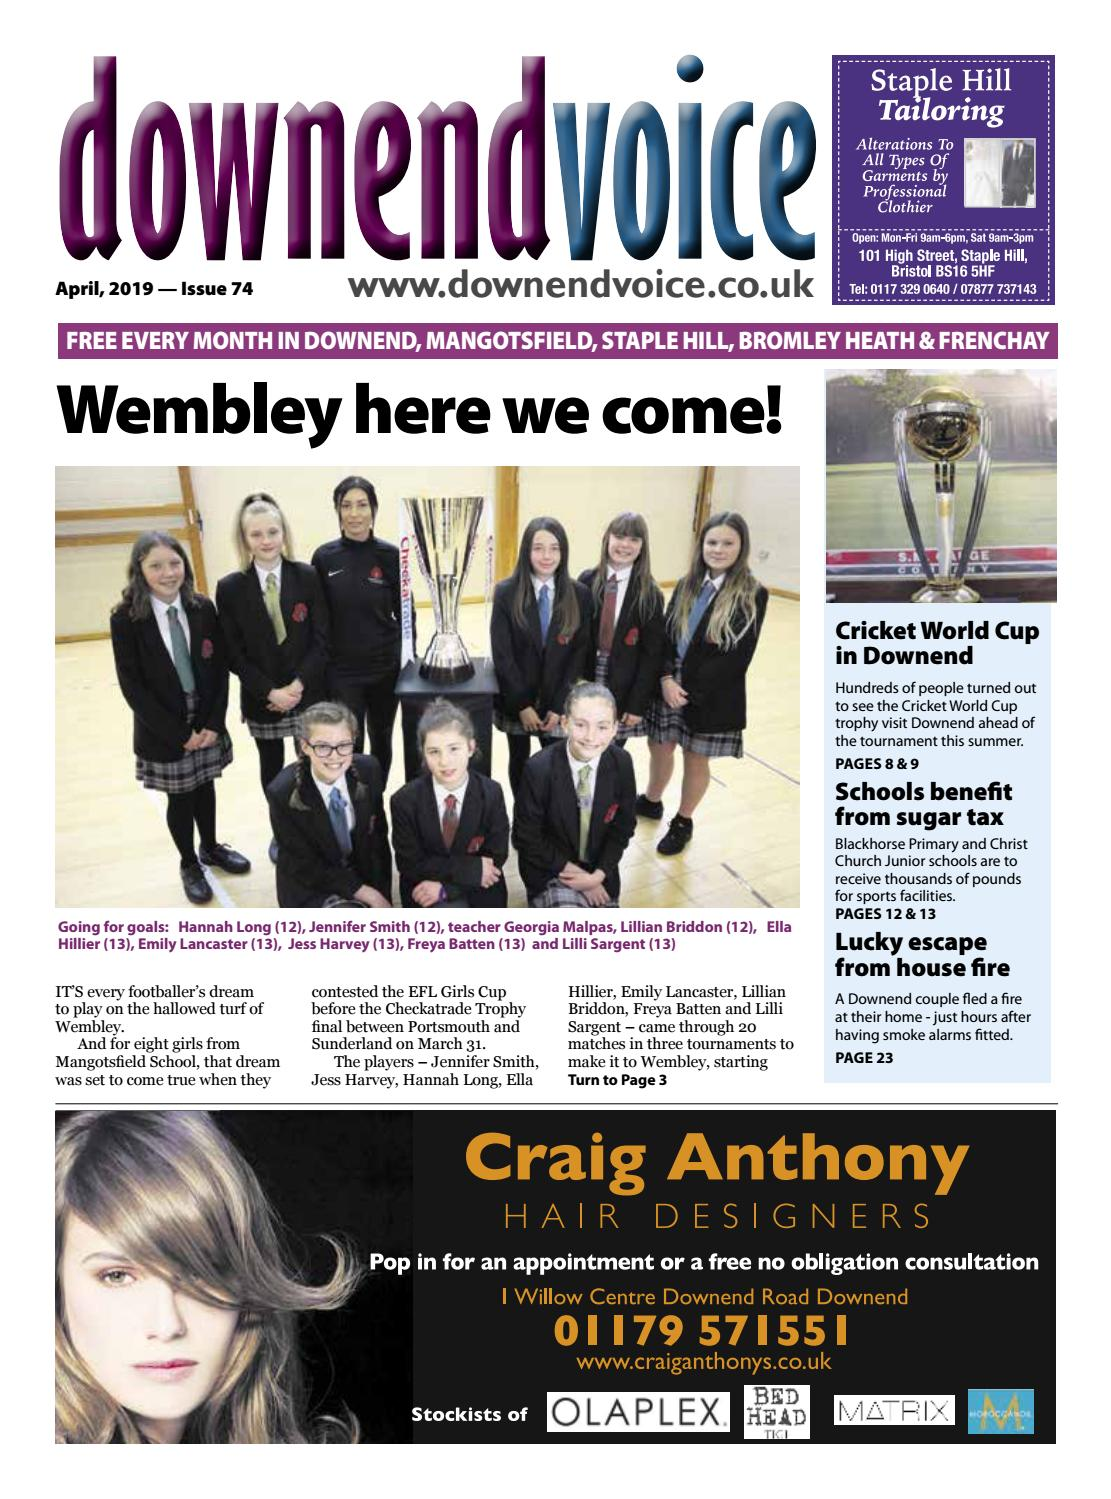 5defe40a0 Downend Voice April 2019 by Gary Brindle - issuu